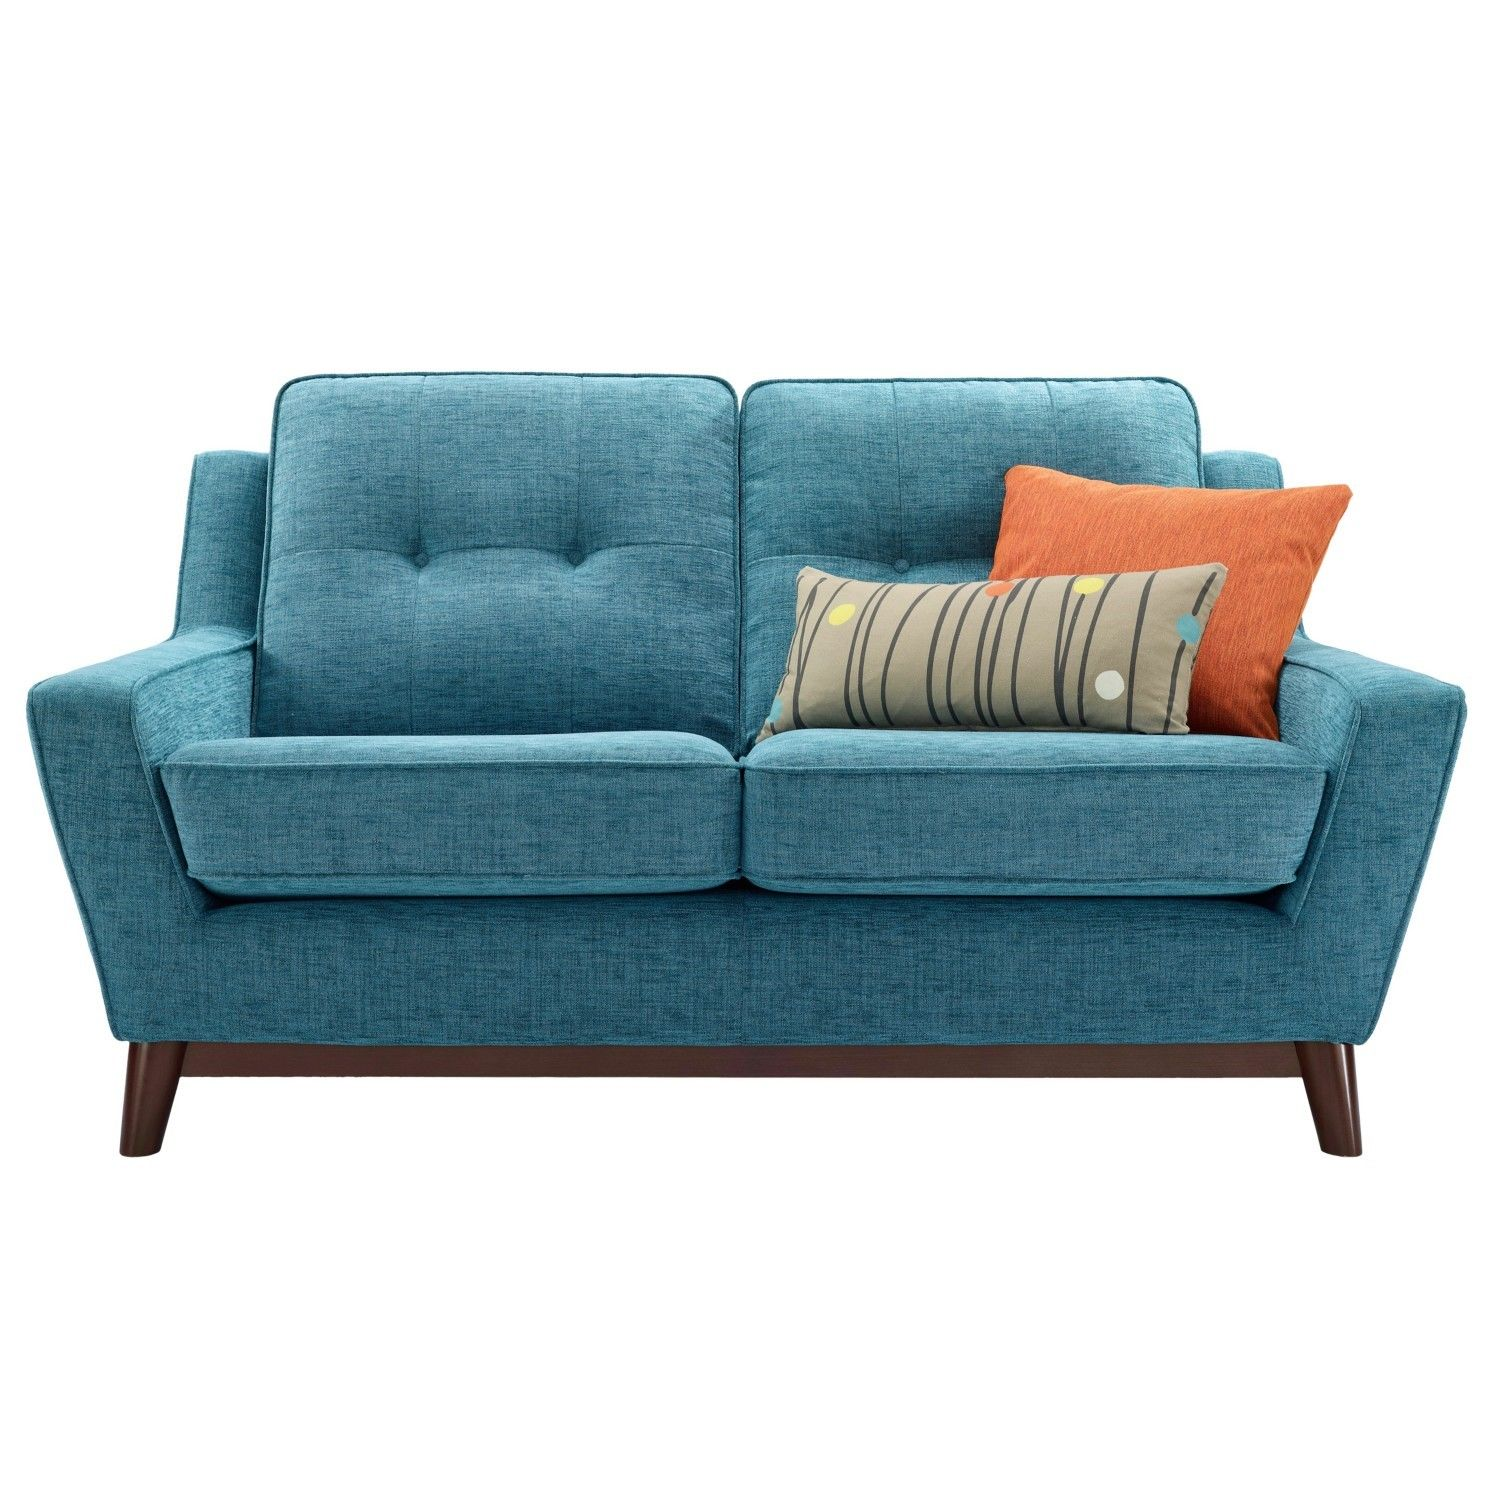 cool ikea small sofa online-Luxury Ikea Small sofa Gallery